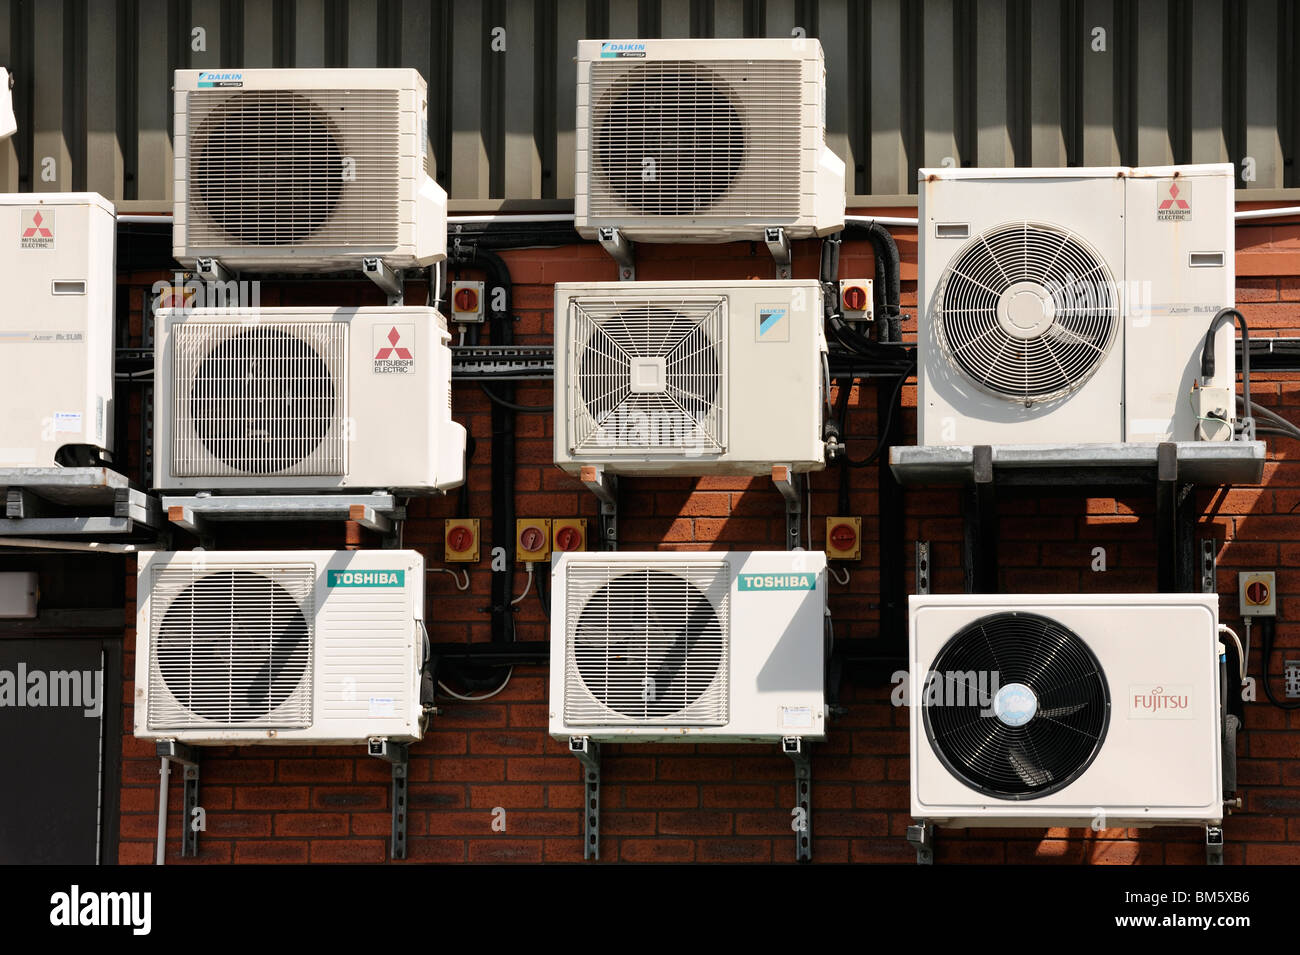 AIr conditioning units - Stock Image